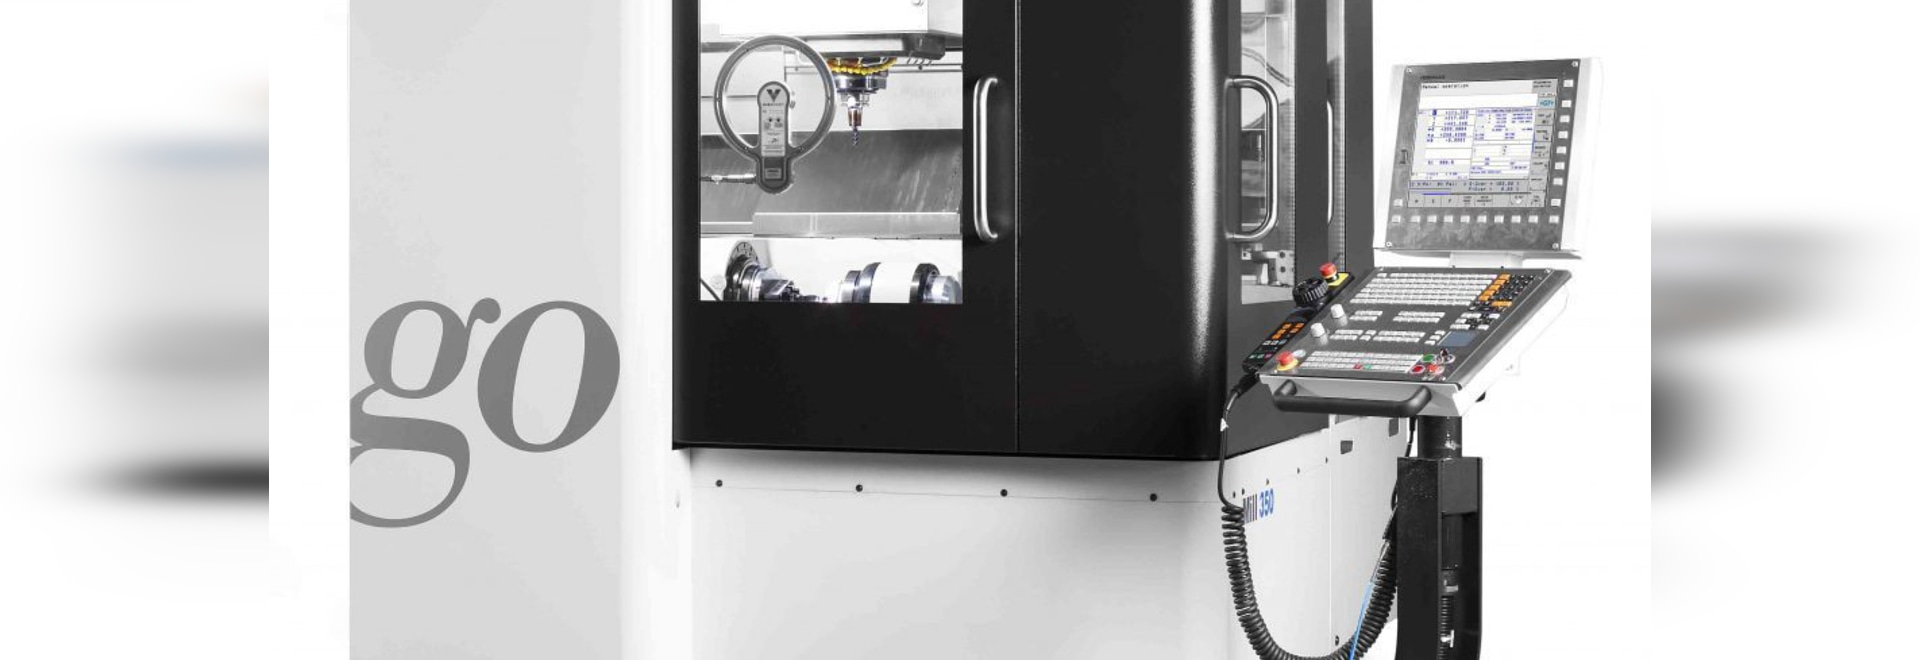 Leichti unveils new Go-Mill 350 for airfoils applications